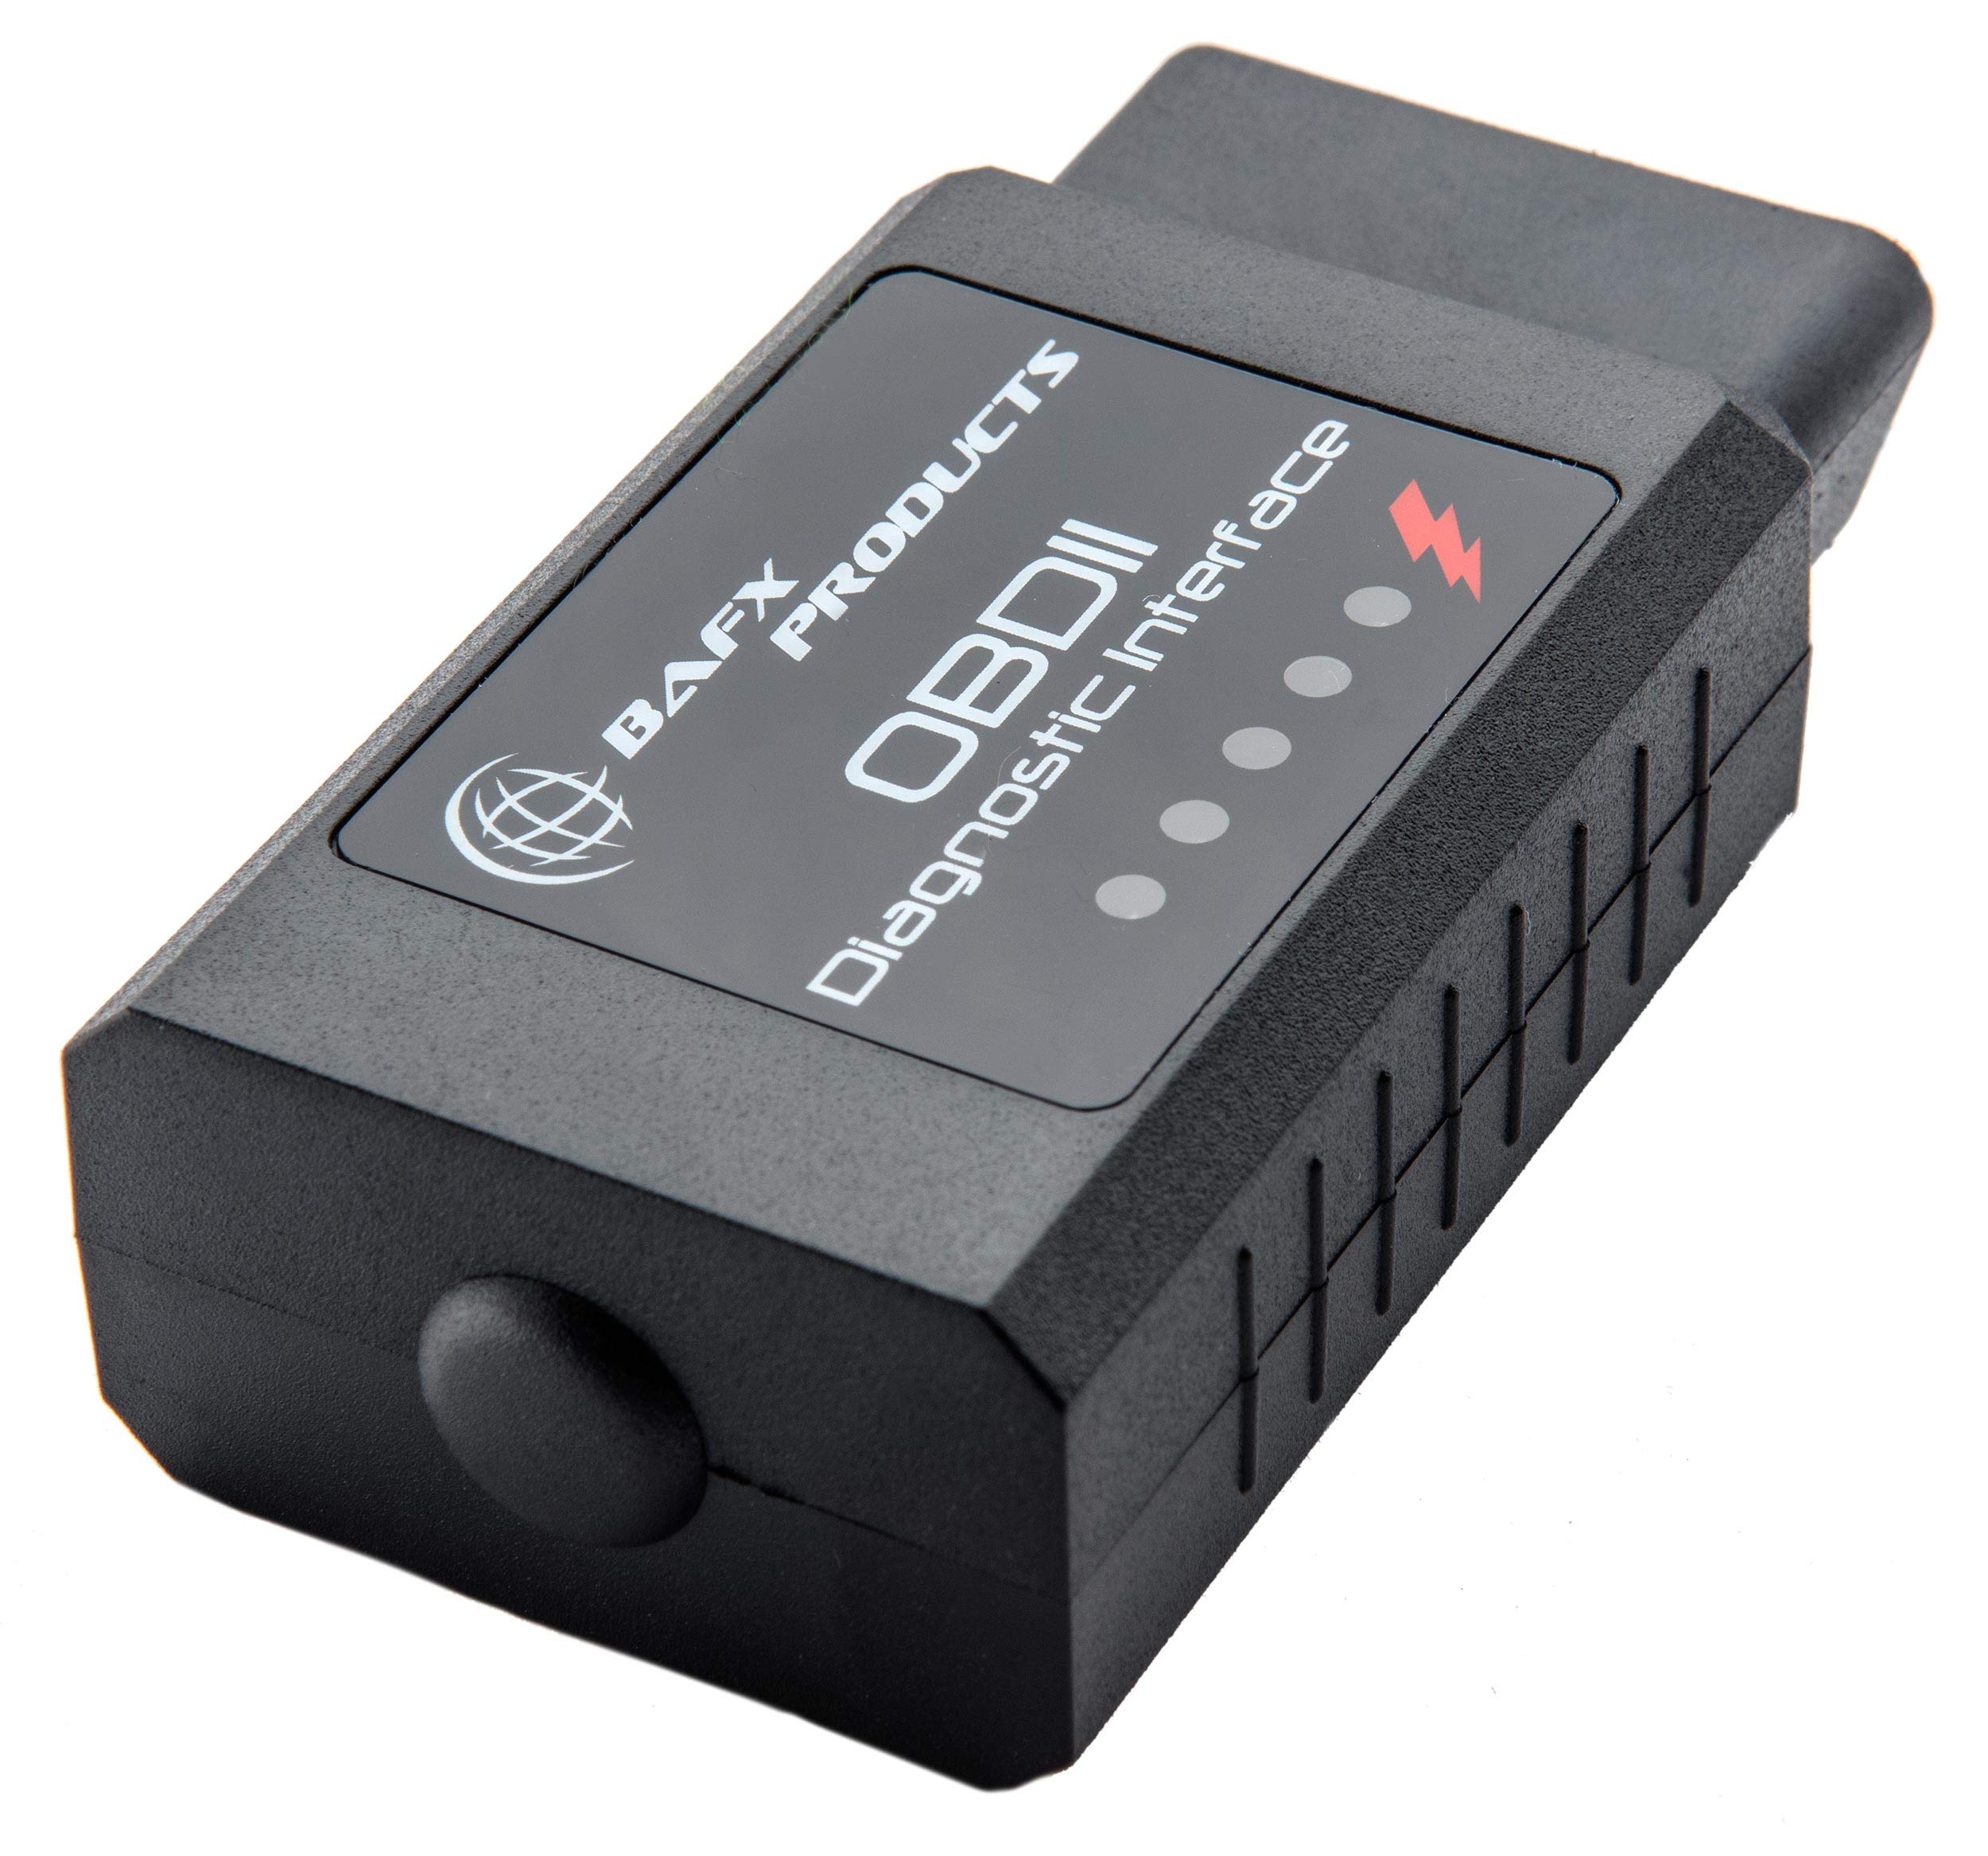 BAFX Products Bluetooth OBD2 / OBDII Diagnostic Car Scanner Reader Tool for Android by BAFX Products (Image #5)